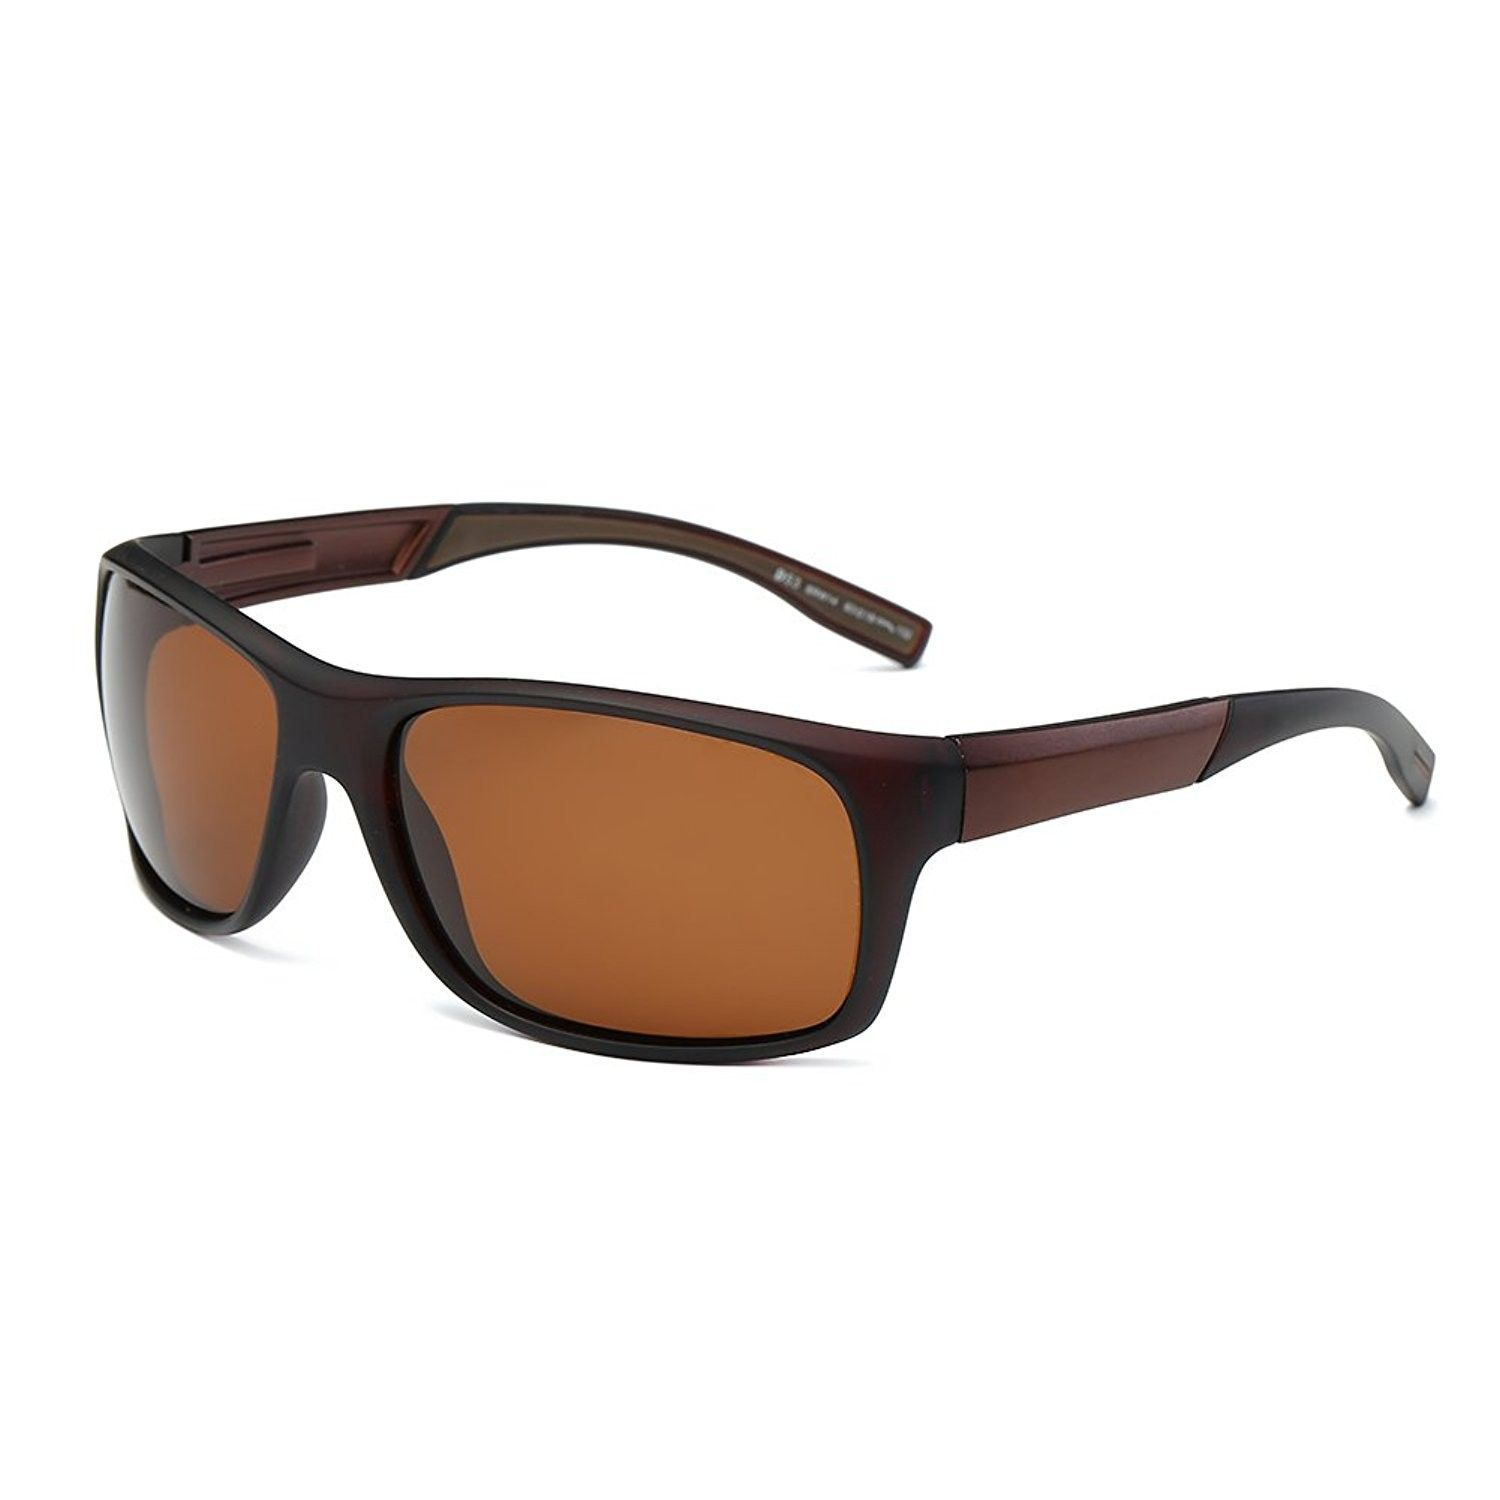 767c08642a5 Cool Polarized Sports Sunglasses Oversized Wrap Around Frame for Fishing  Golf Hiking D53 - Brown - CP17YYD82QC - Women s Sunglasses